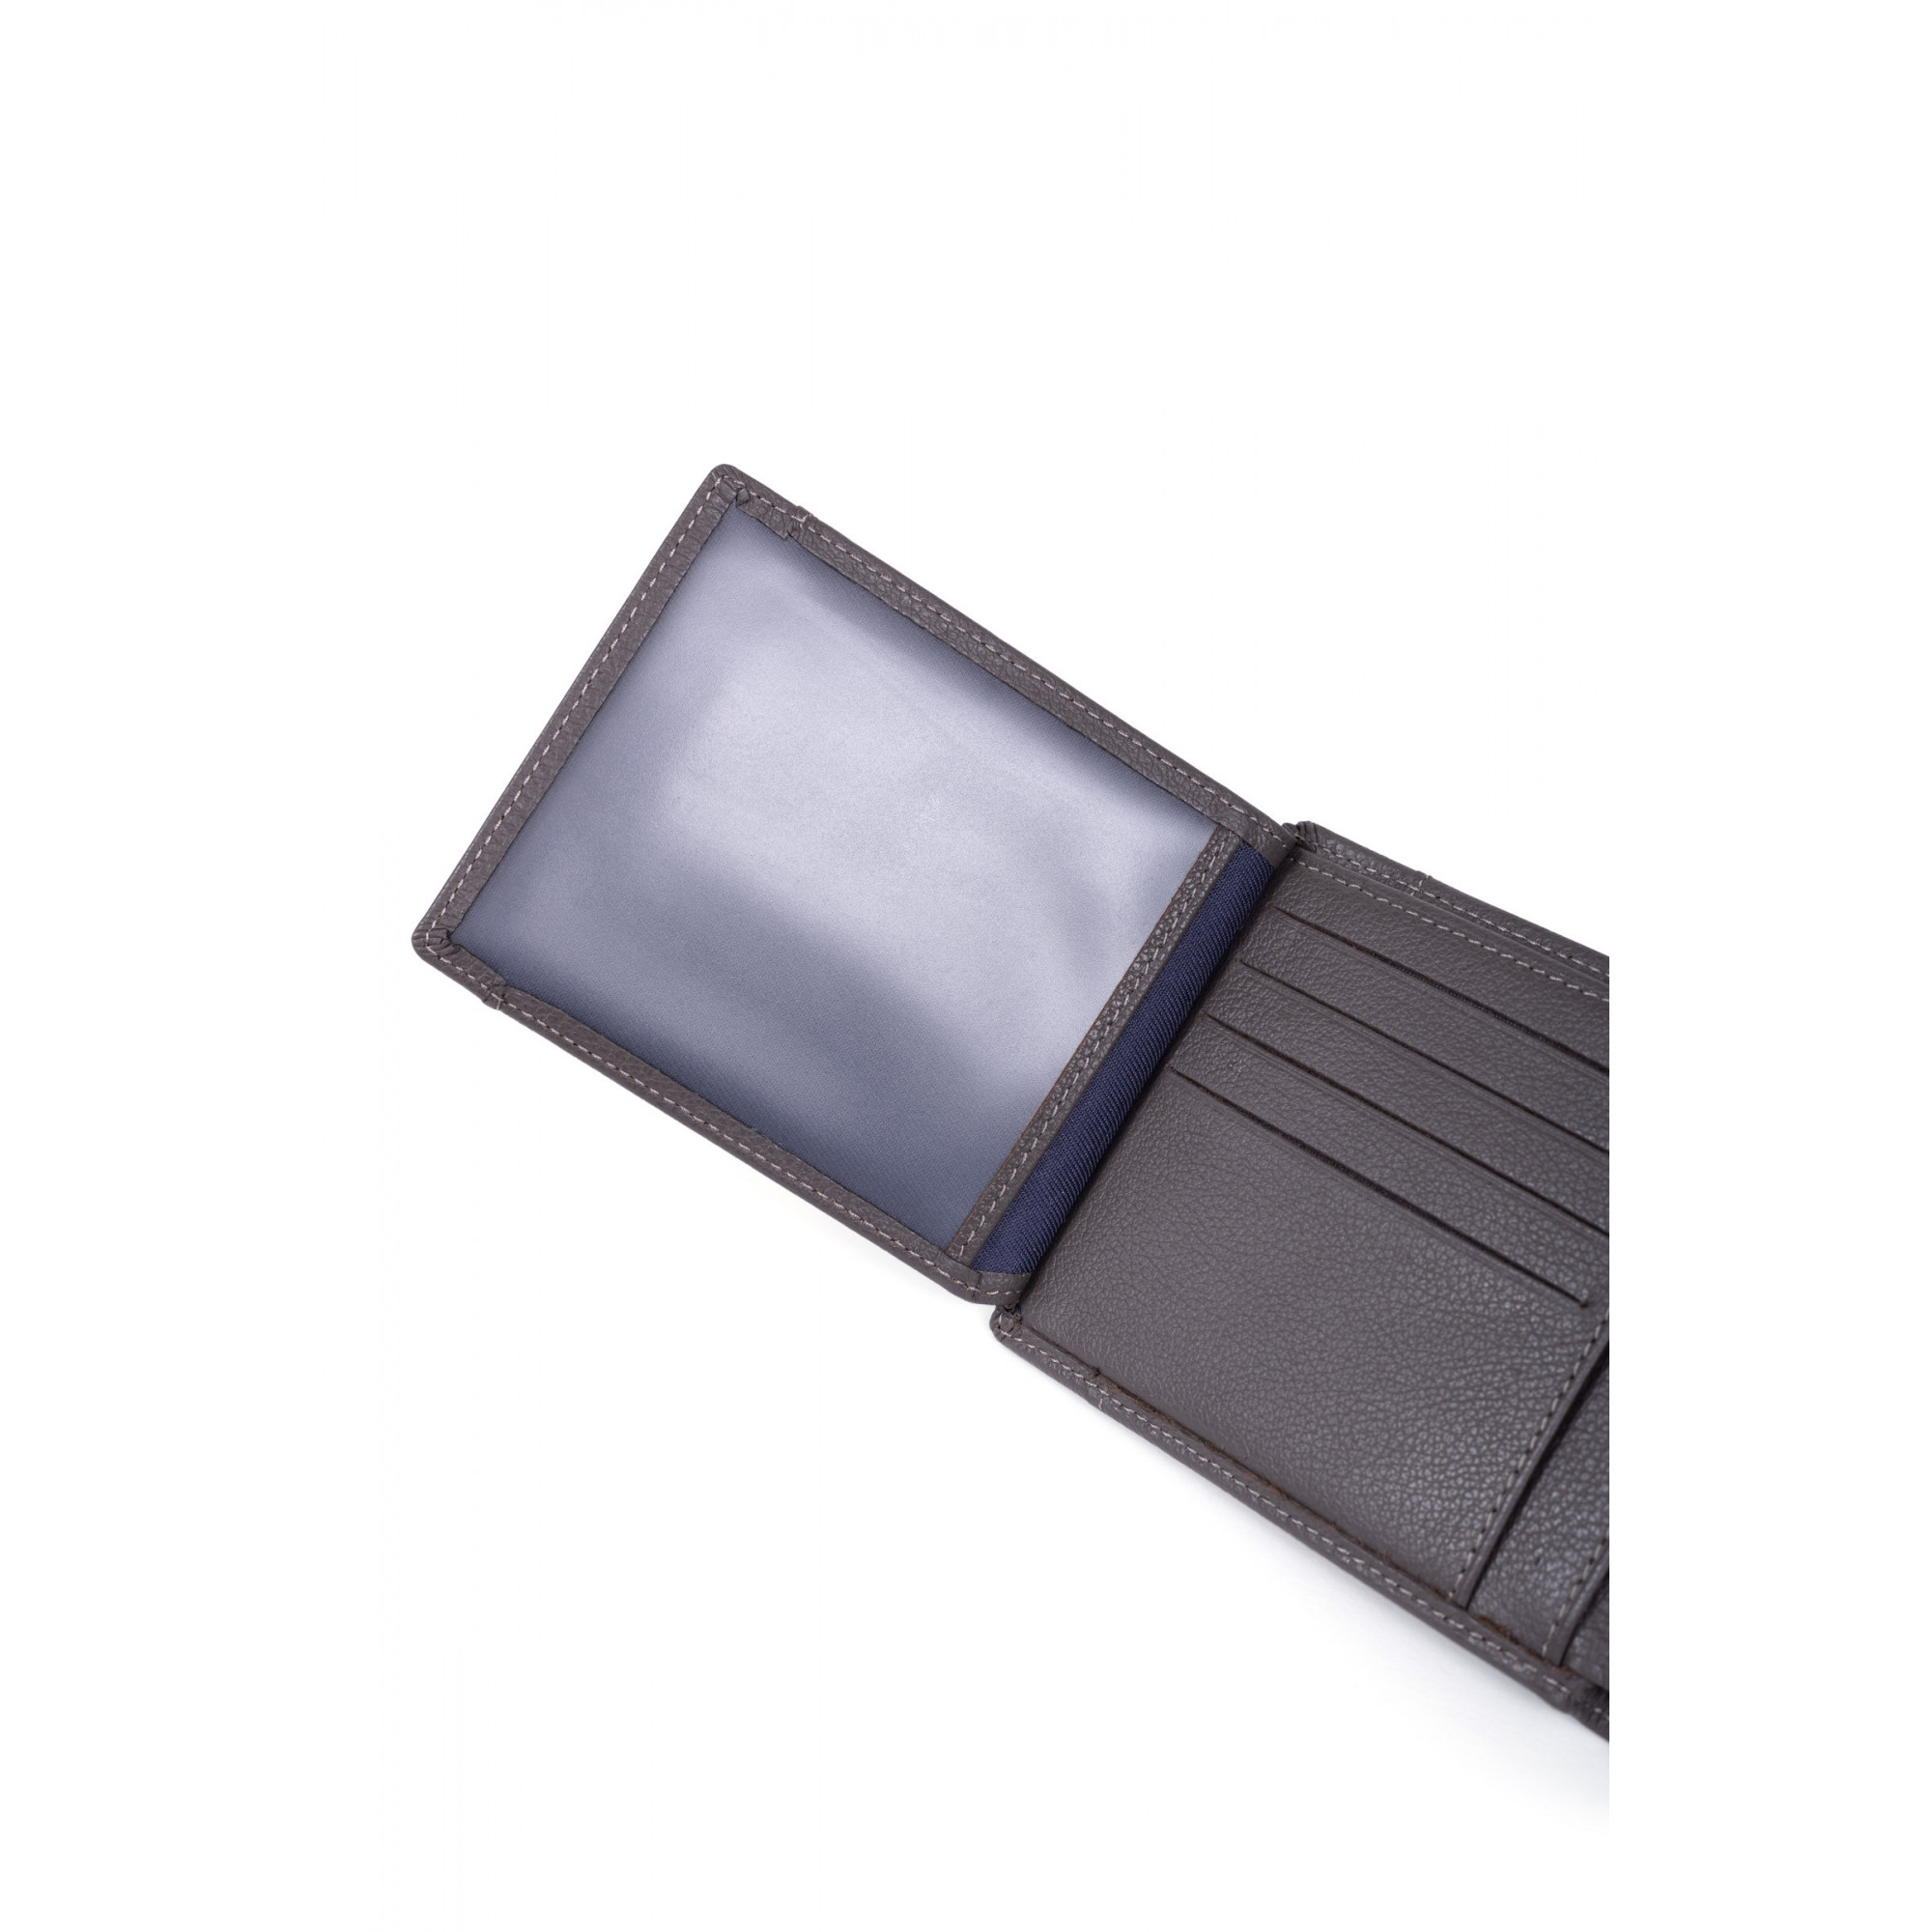 Grained leather wallet